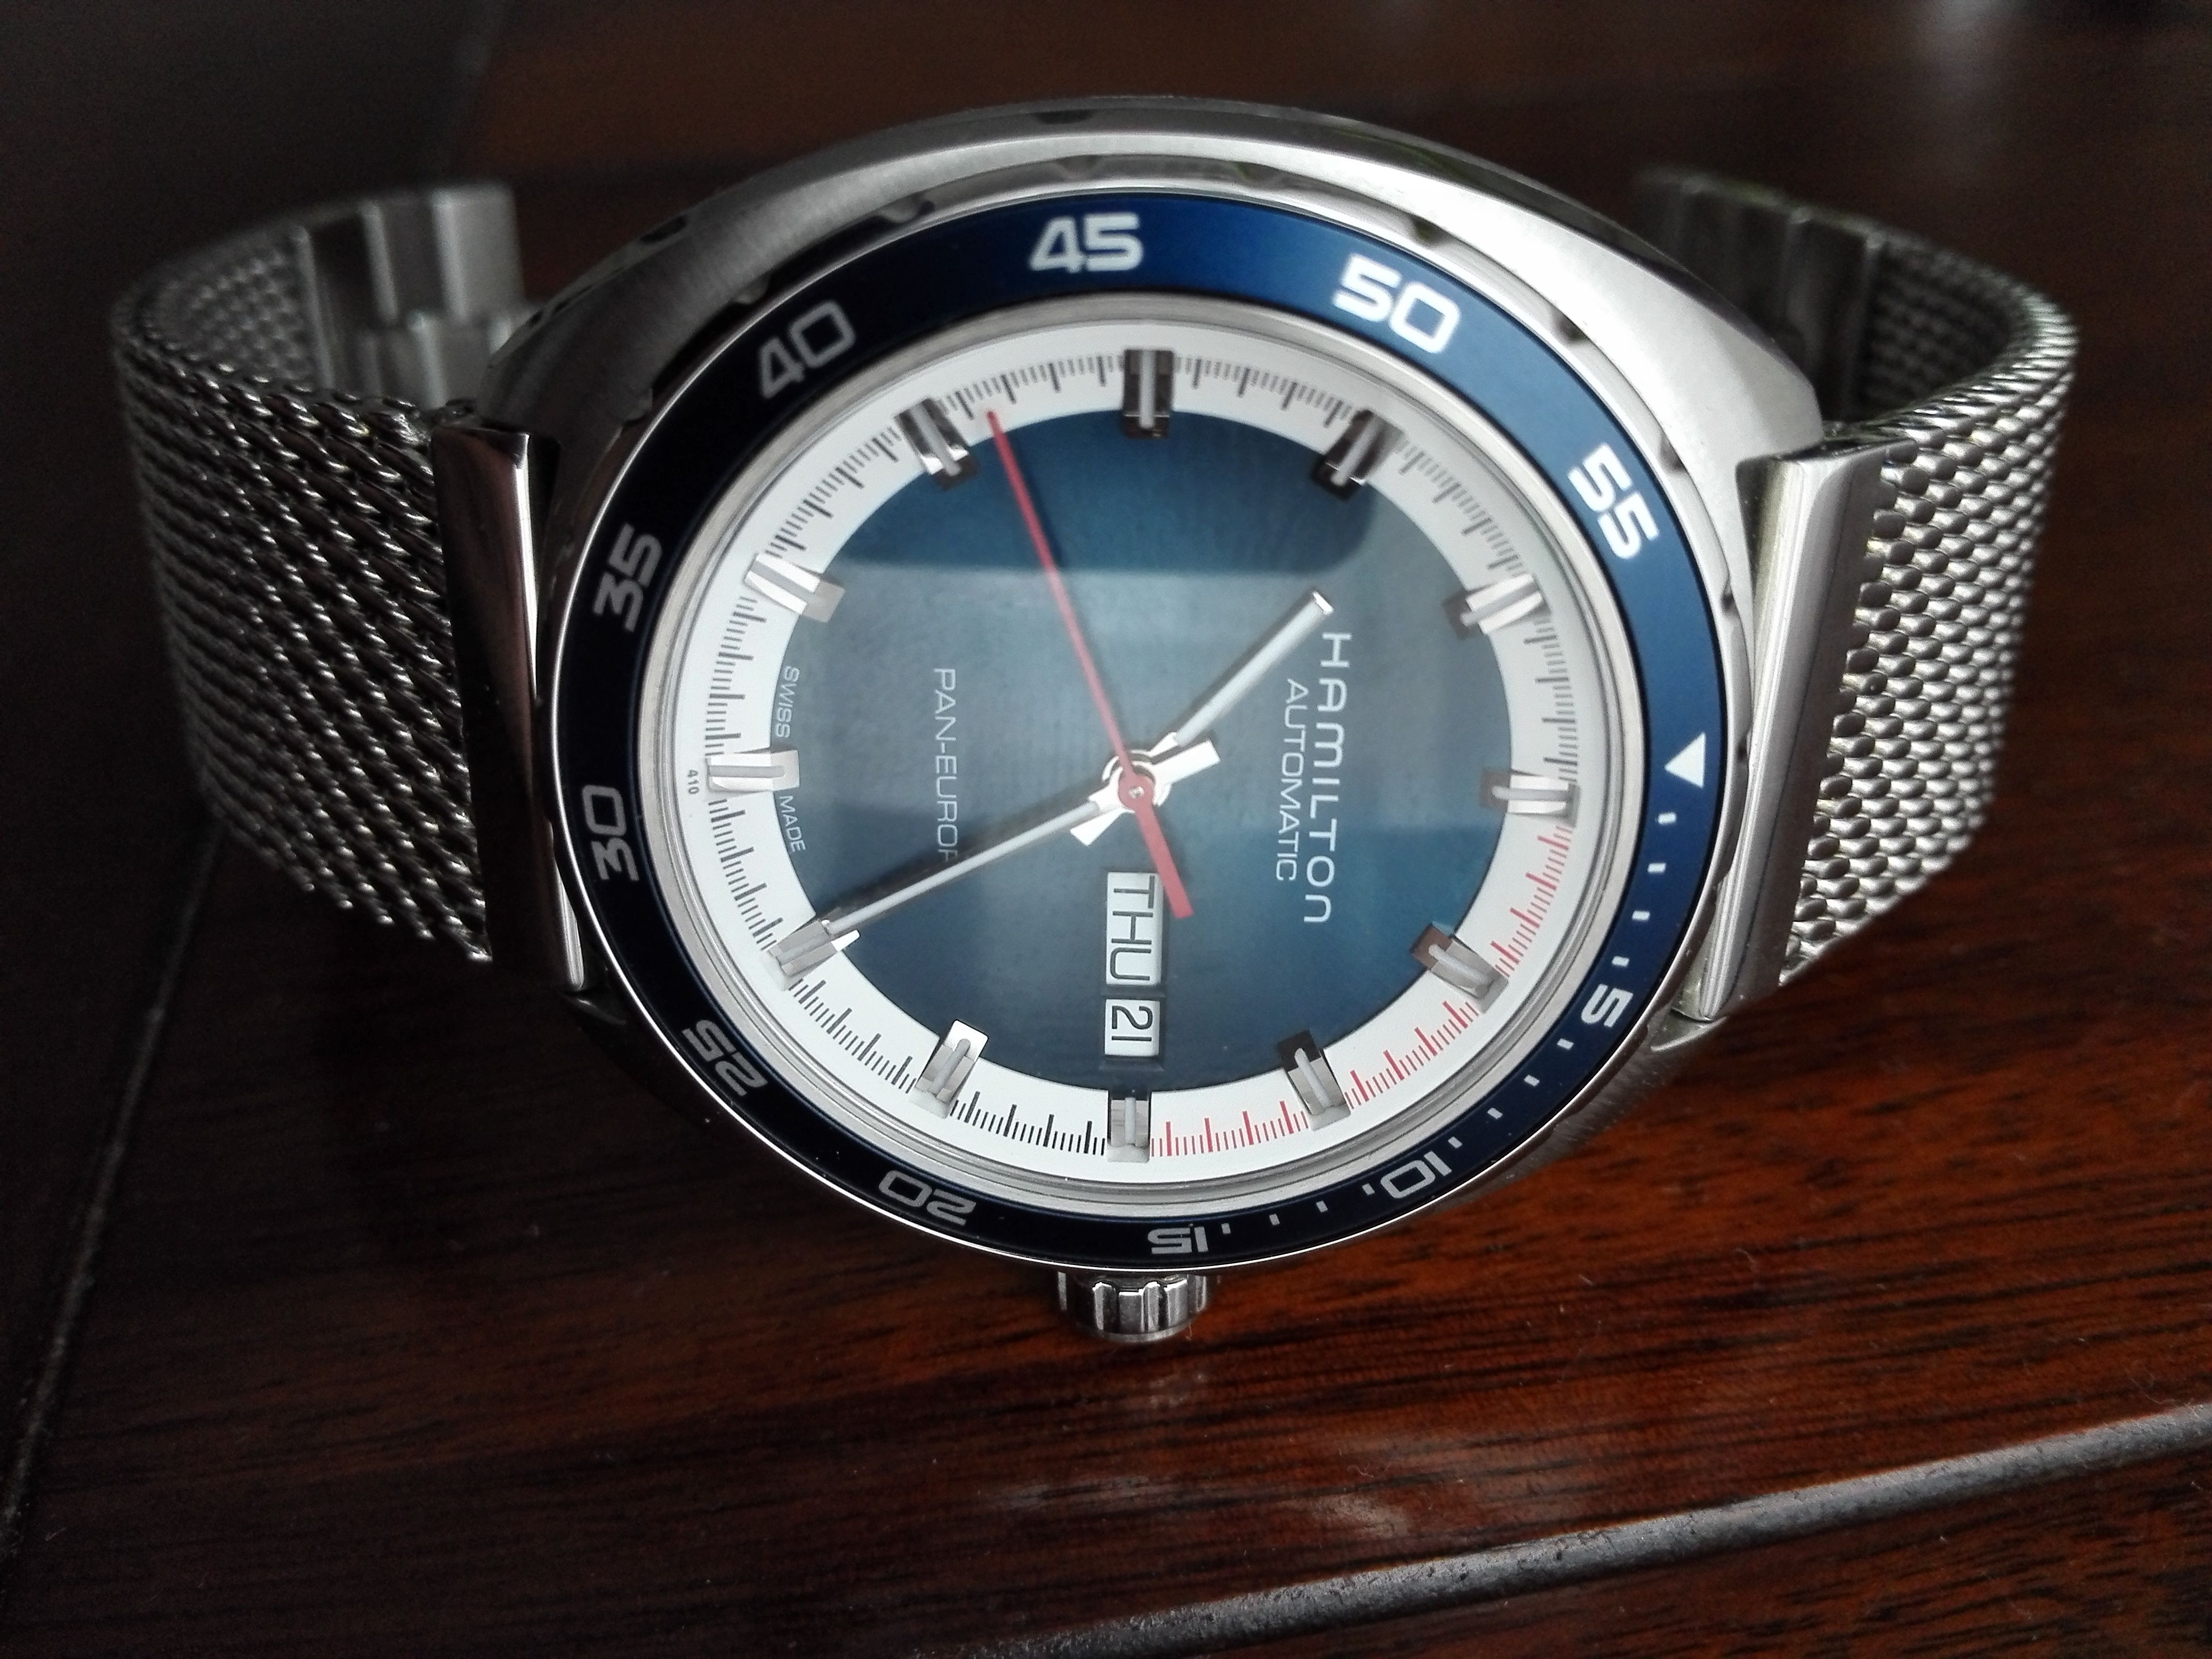 Hamilton Pan Europ On A Premium Vantage Mesh Strap Watches For Men Mesh Strap Watches